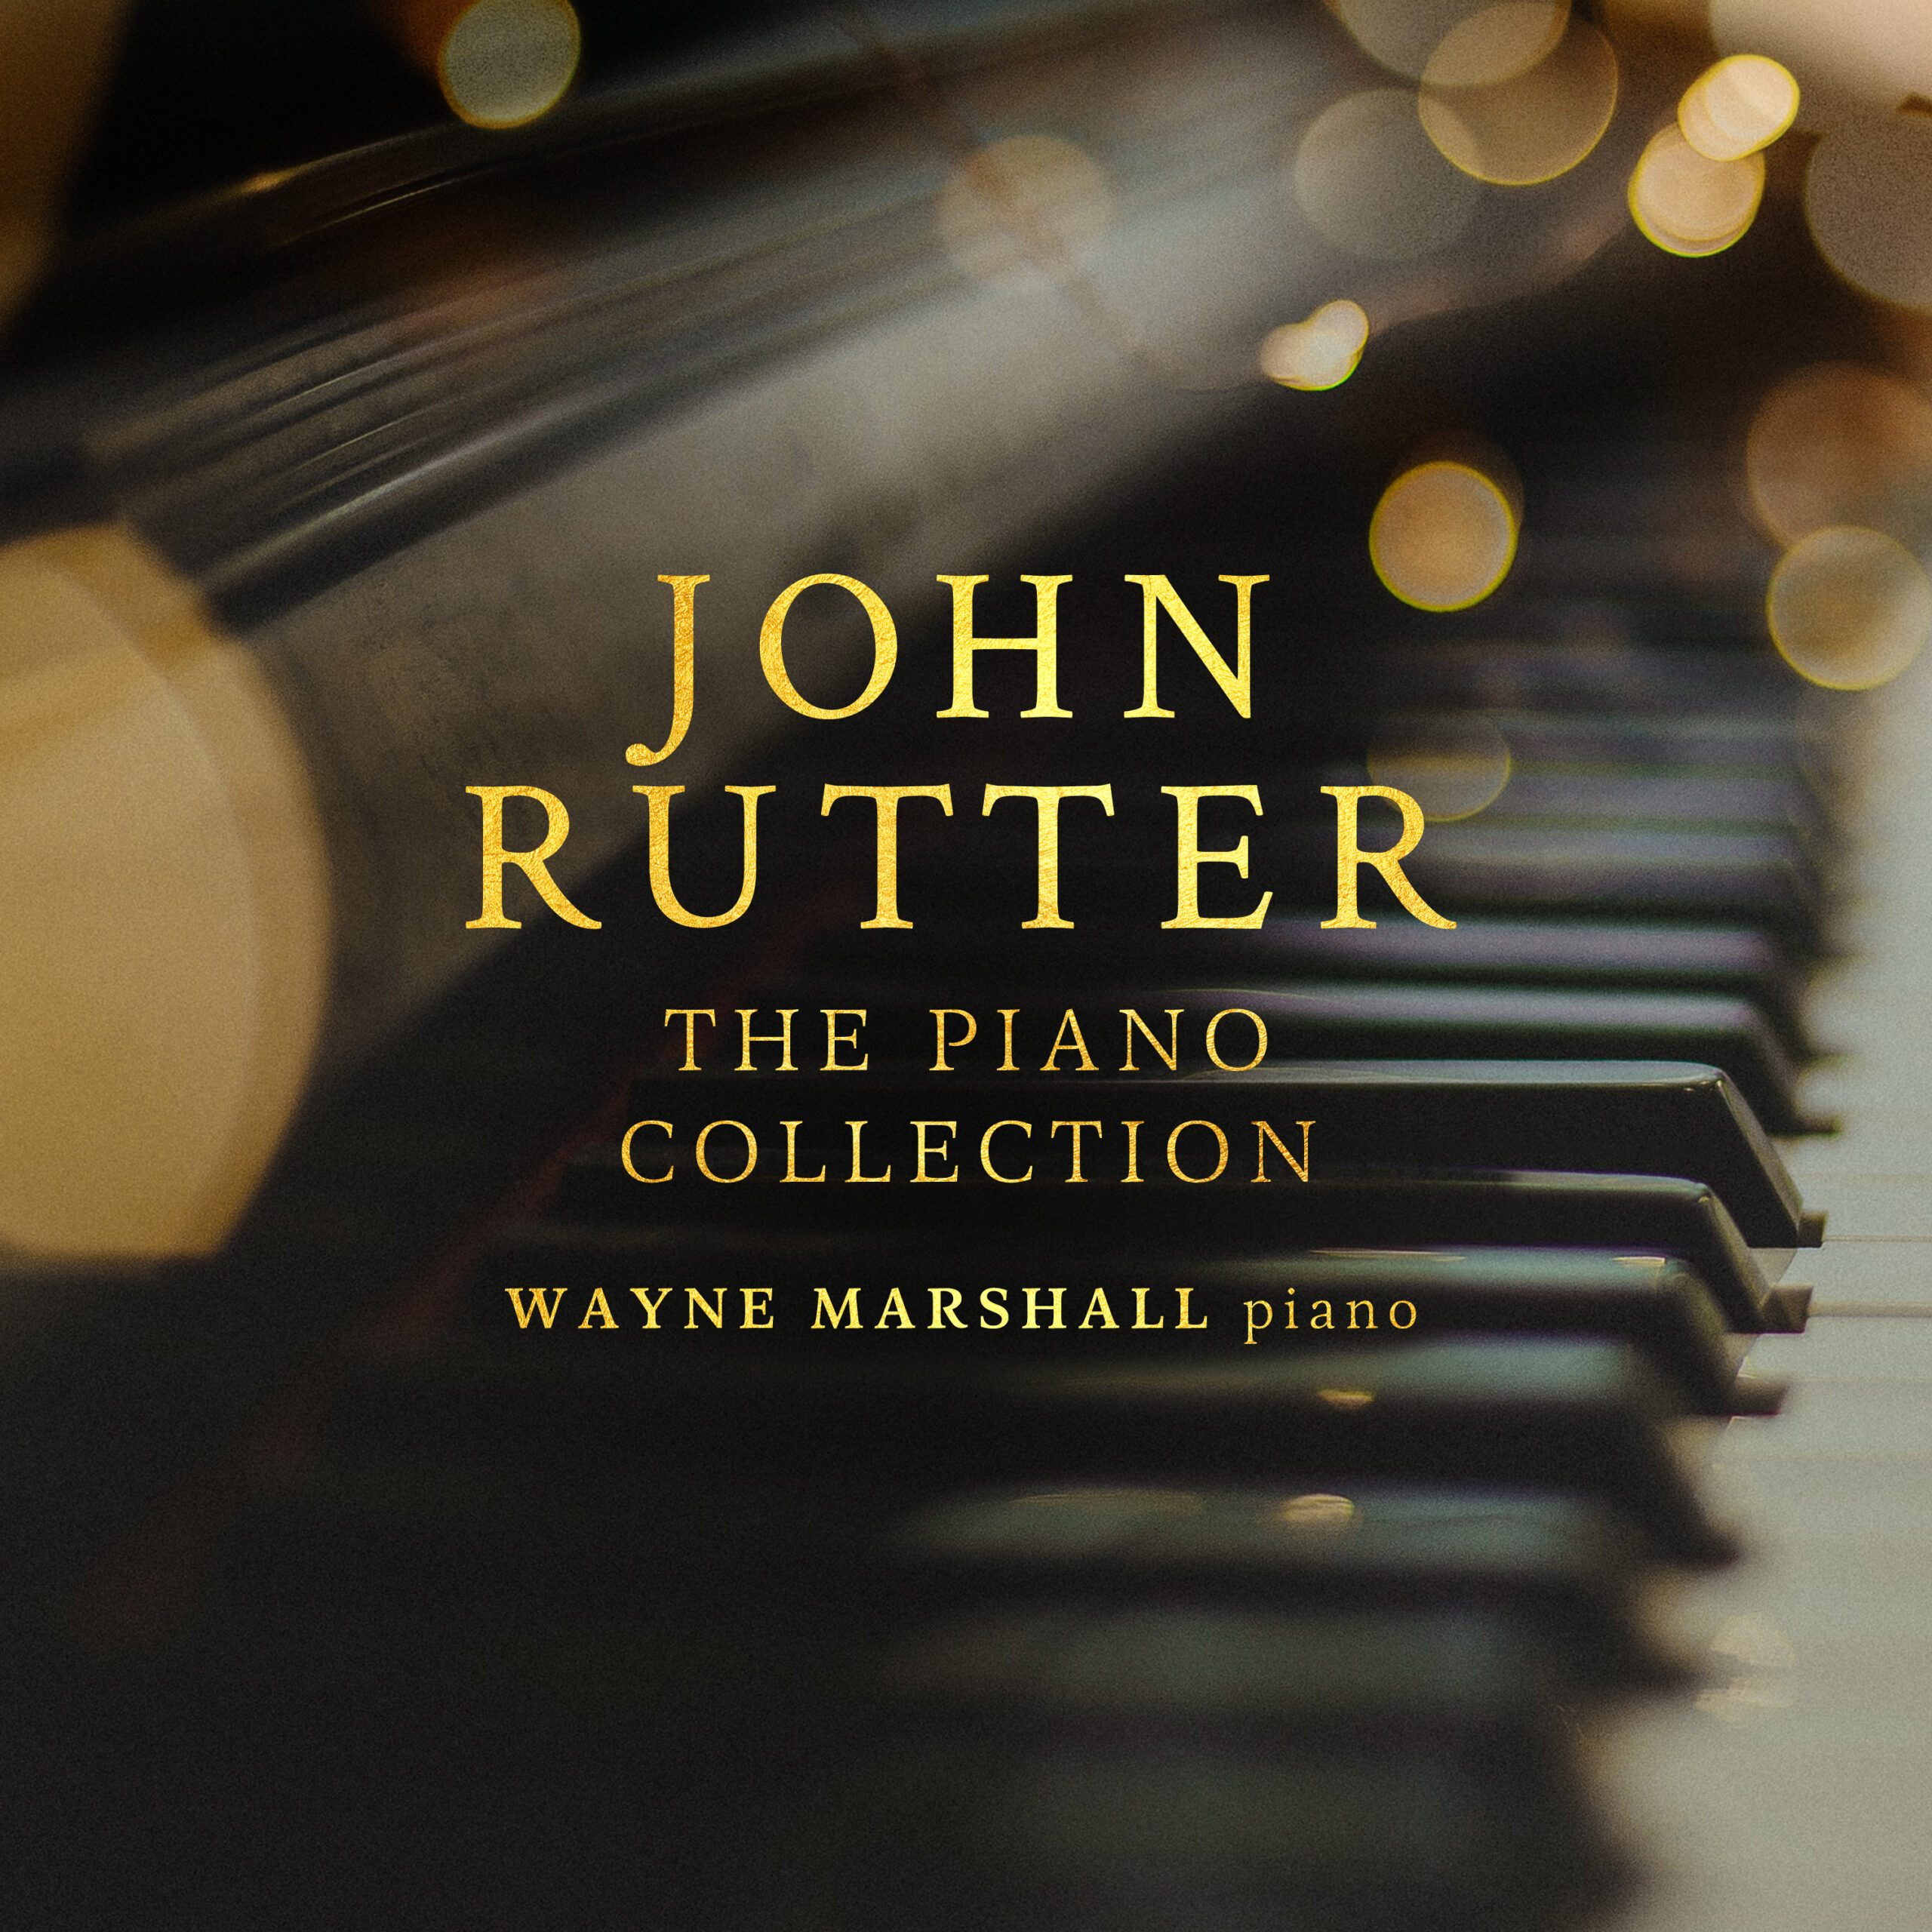 John Rutter The Piano Collection released